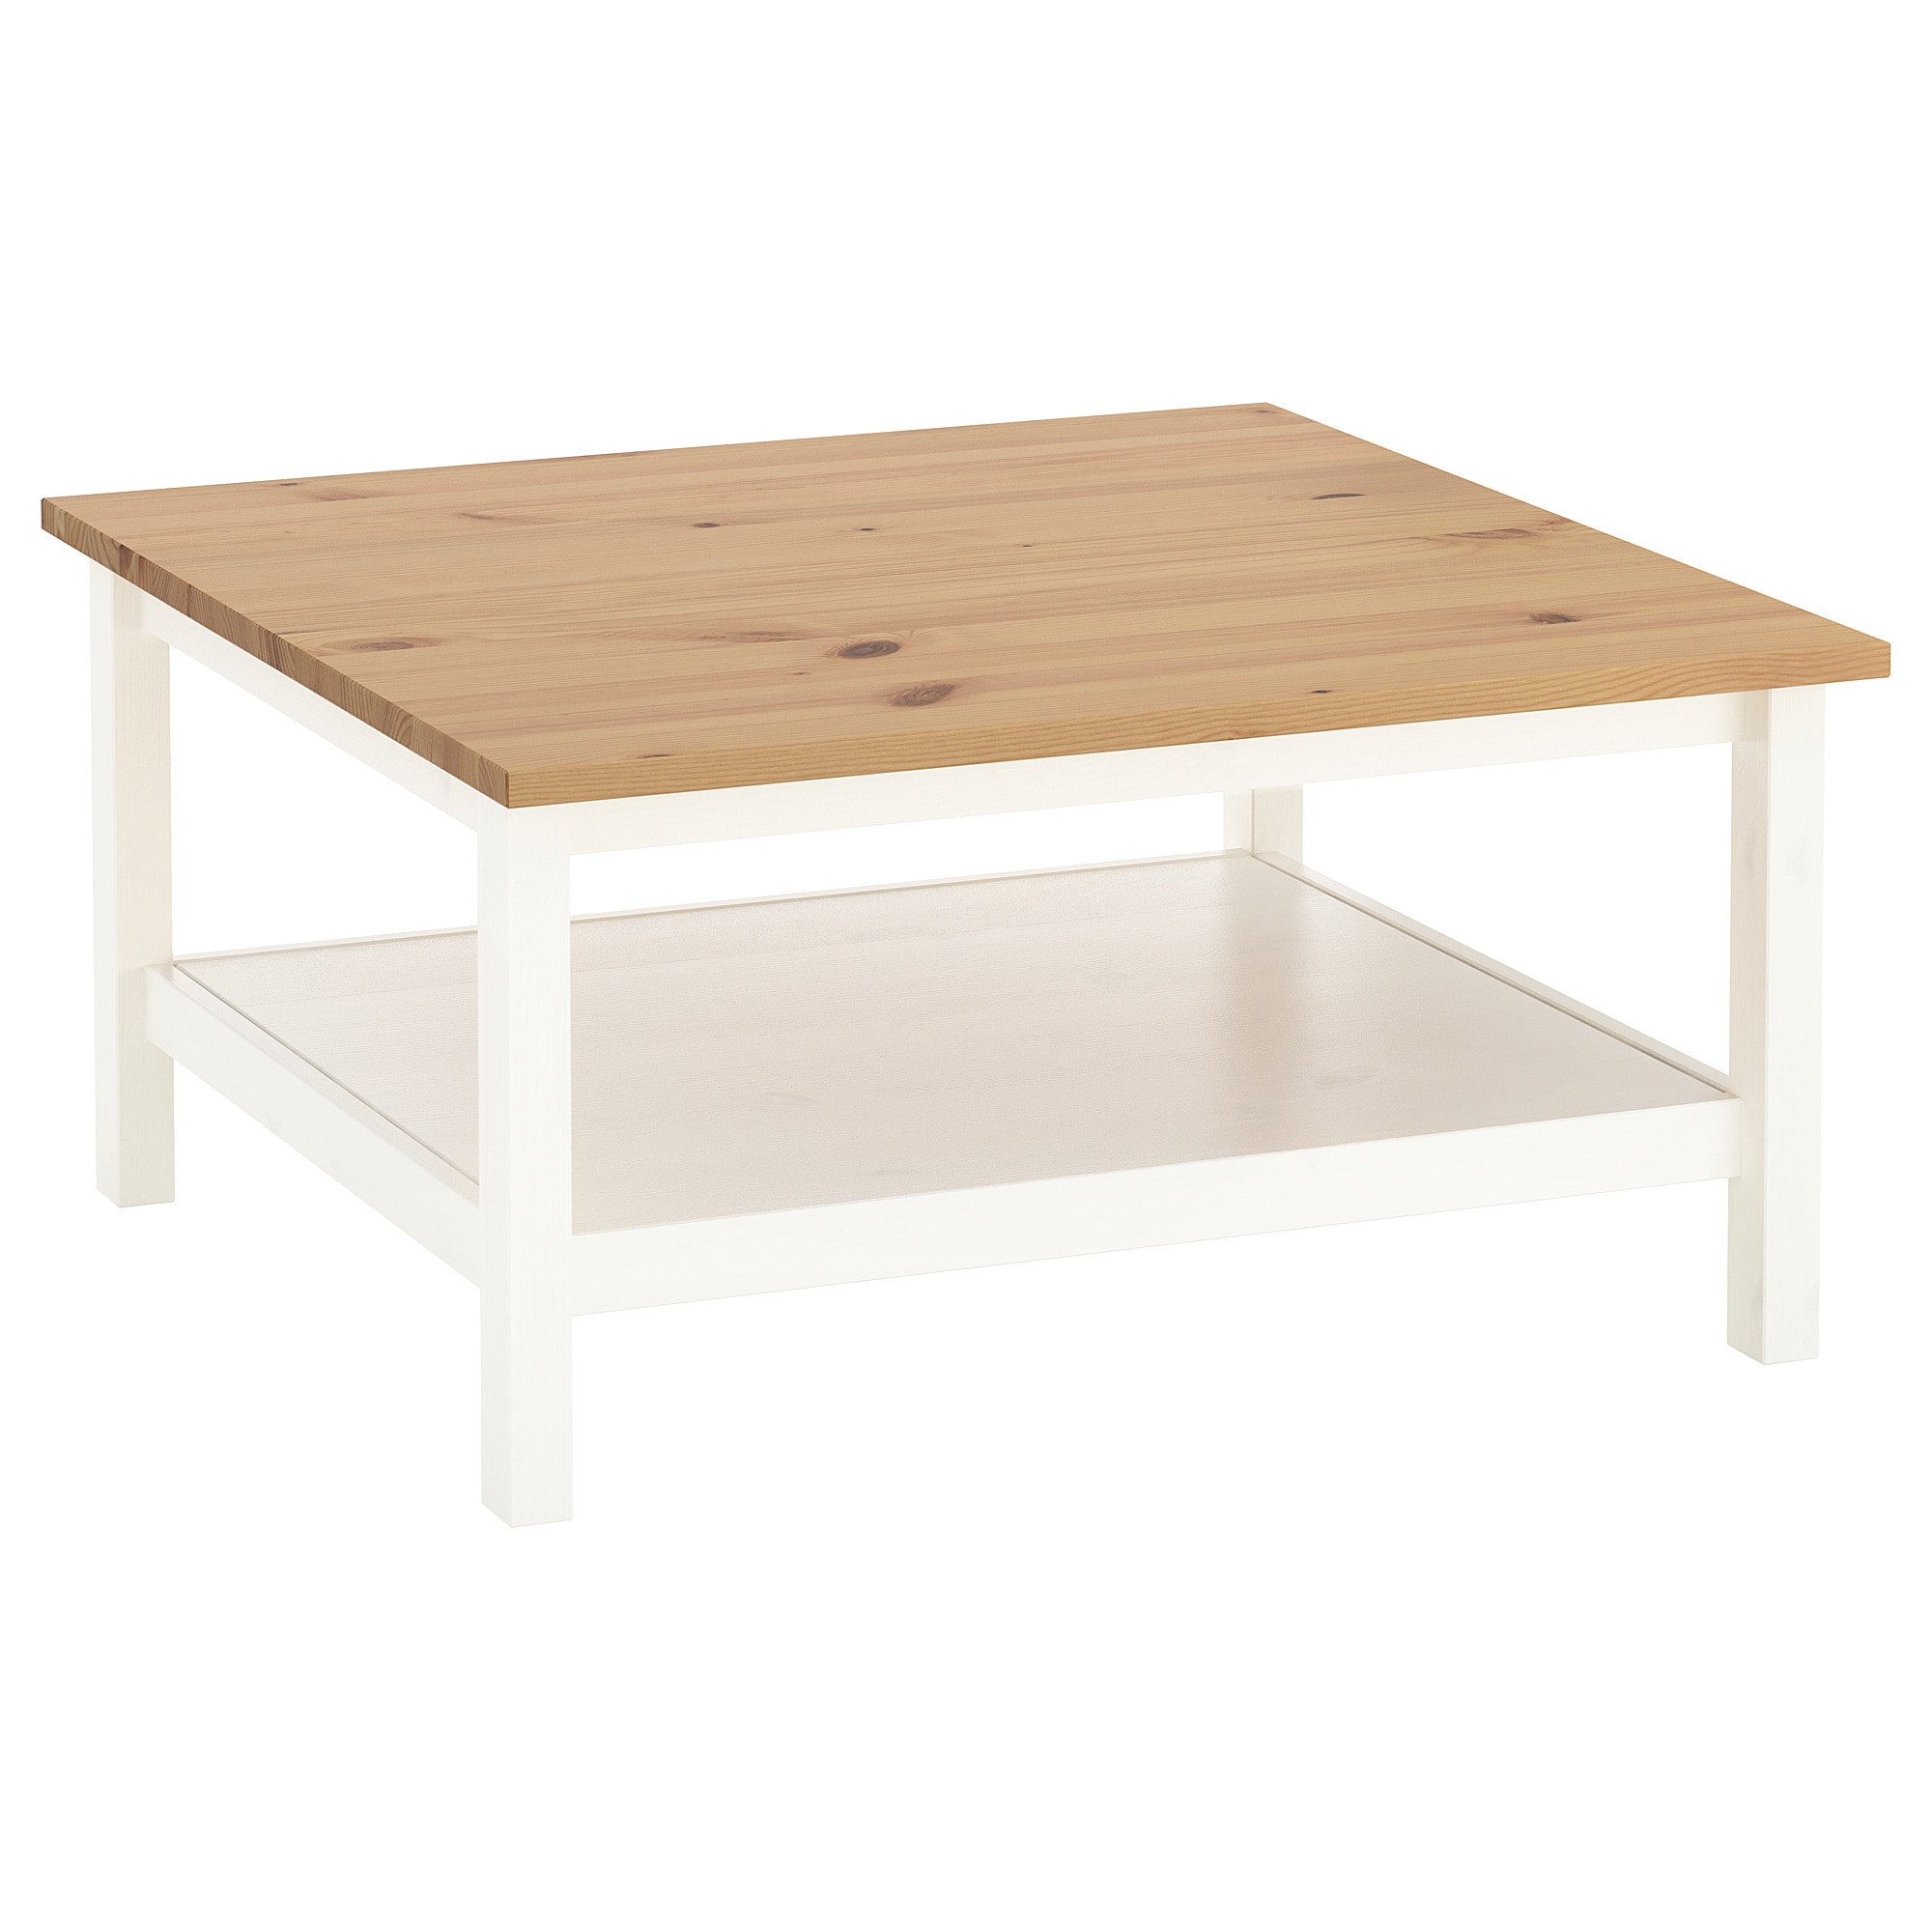 Fashionable Light Natural Coffee Tables With Regard To Hemnes Coffee Table White Stain/light Brown 90 X 90 Cm – Ikea (View 11 of 20)